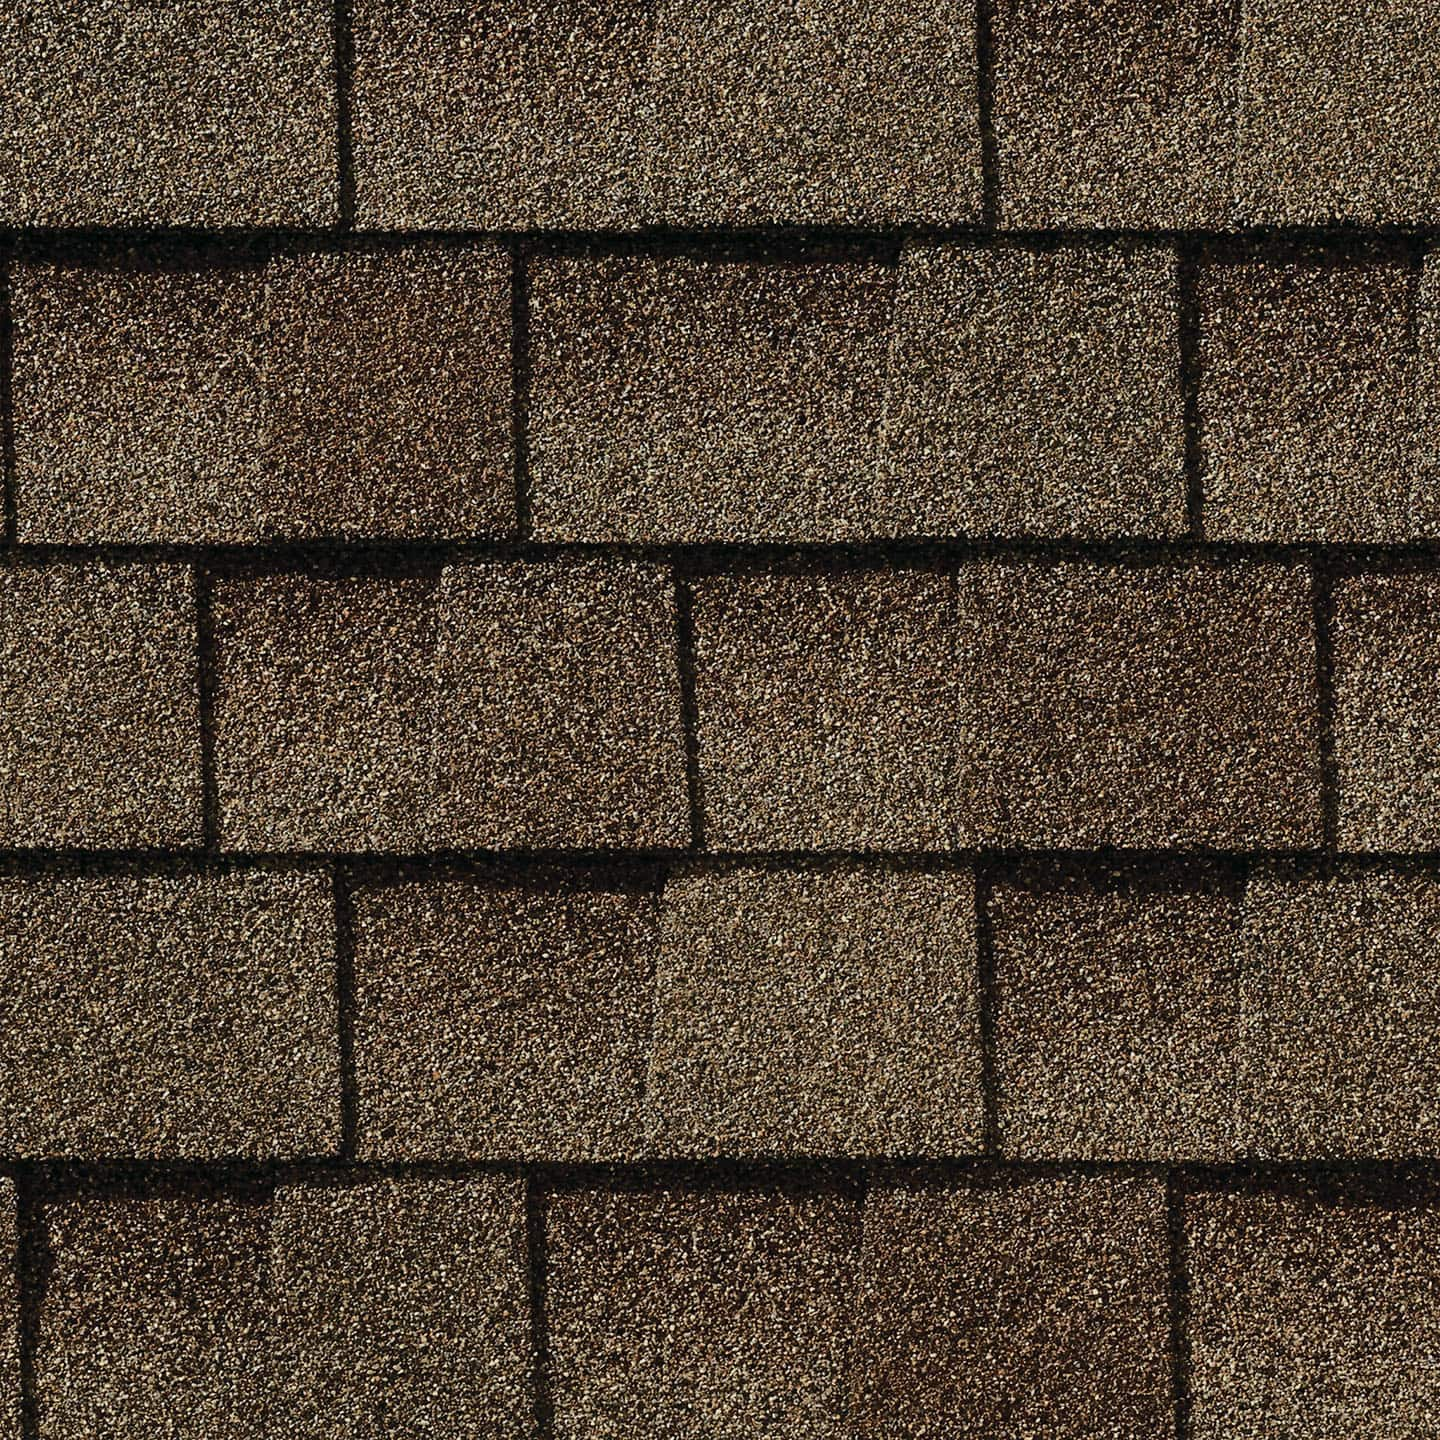 GAF – Scalloped Roof Shingles